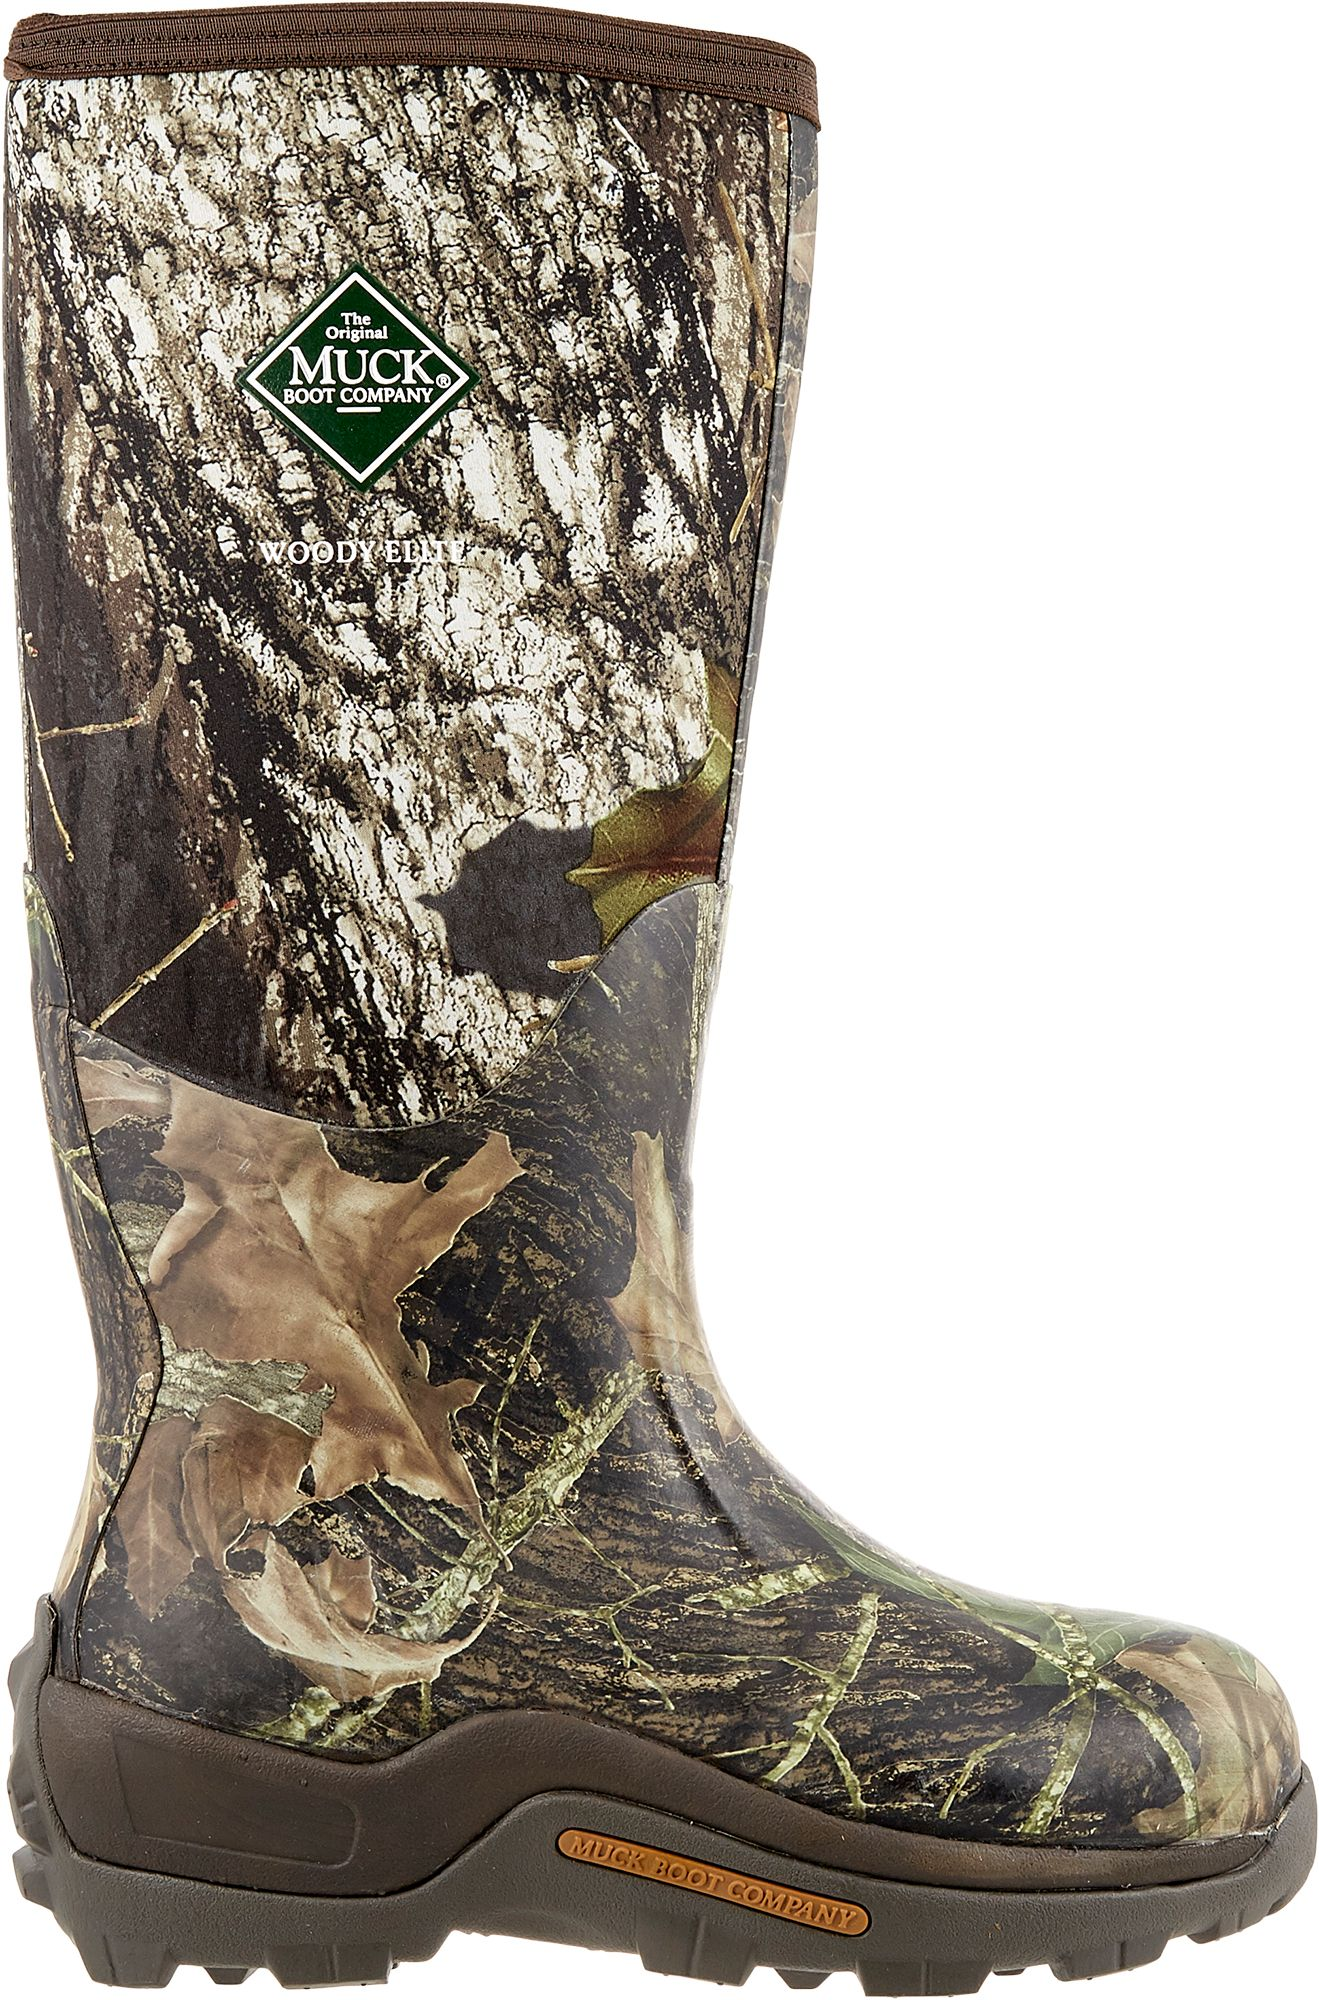 Muck Boot Men's Woody Elite Rubber Hunting Boots| DICK'S Sporting ...